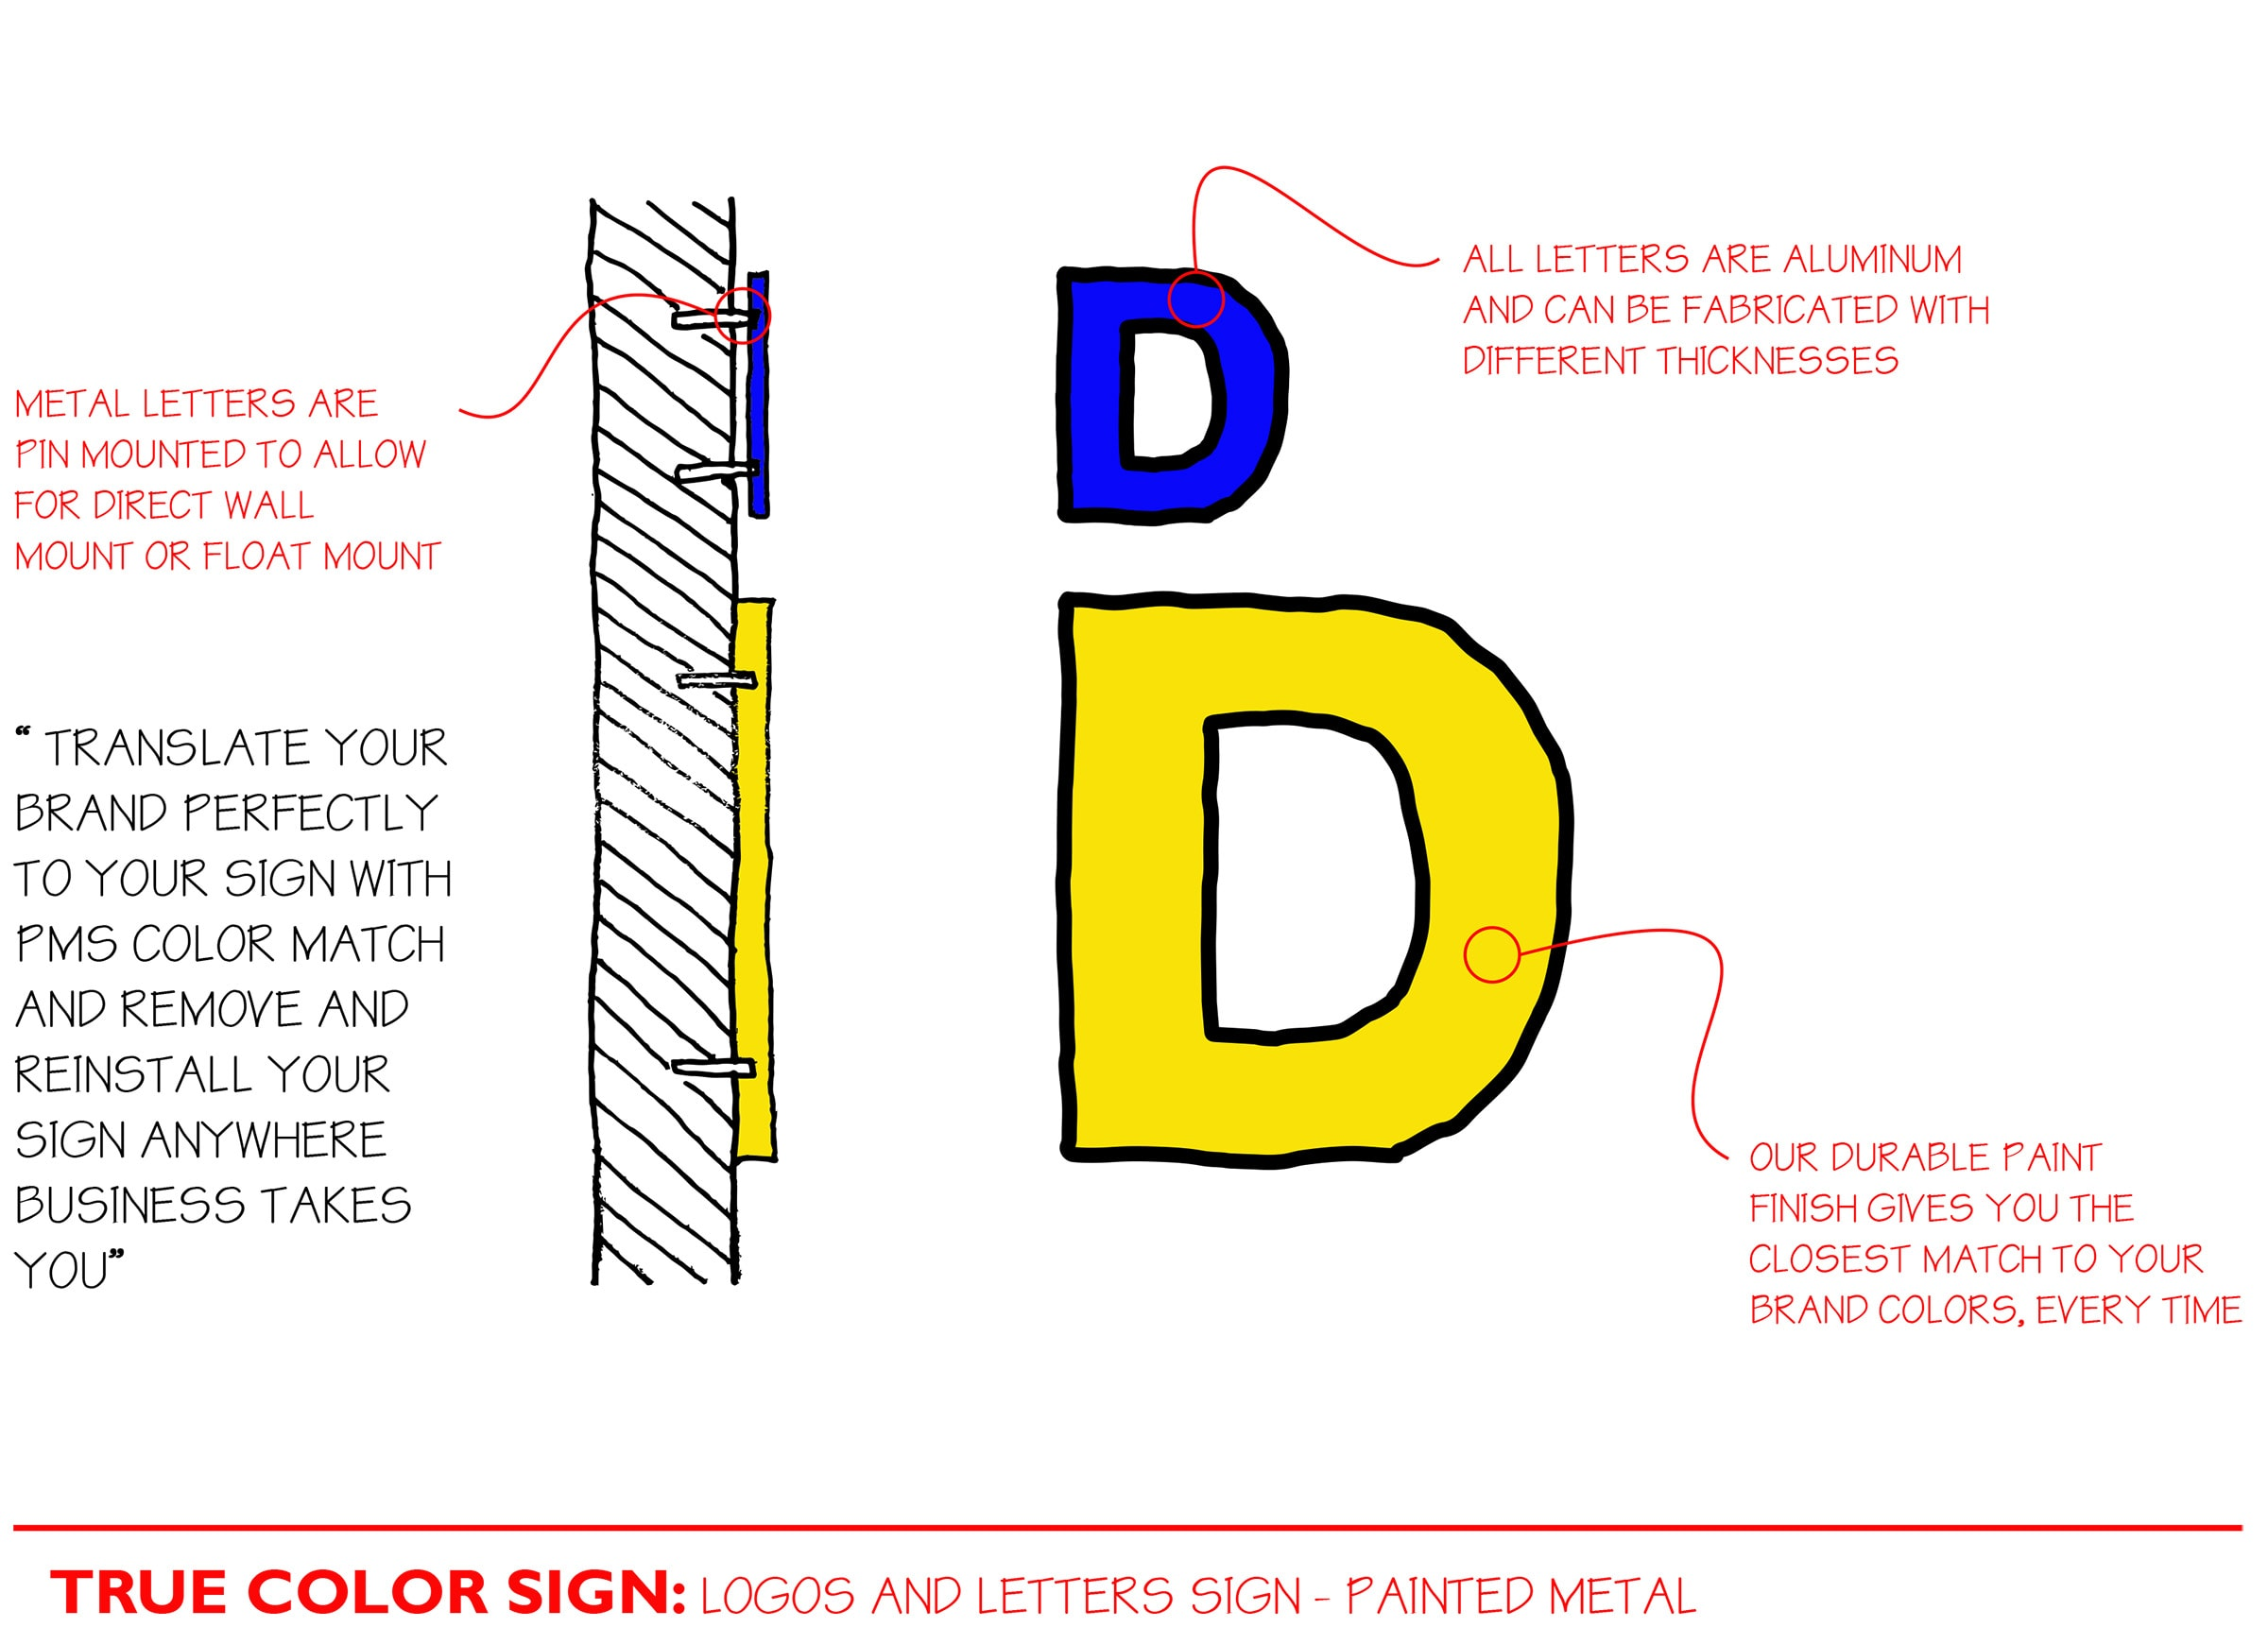 True Color Sign Diagram